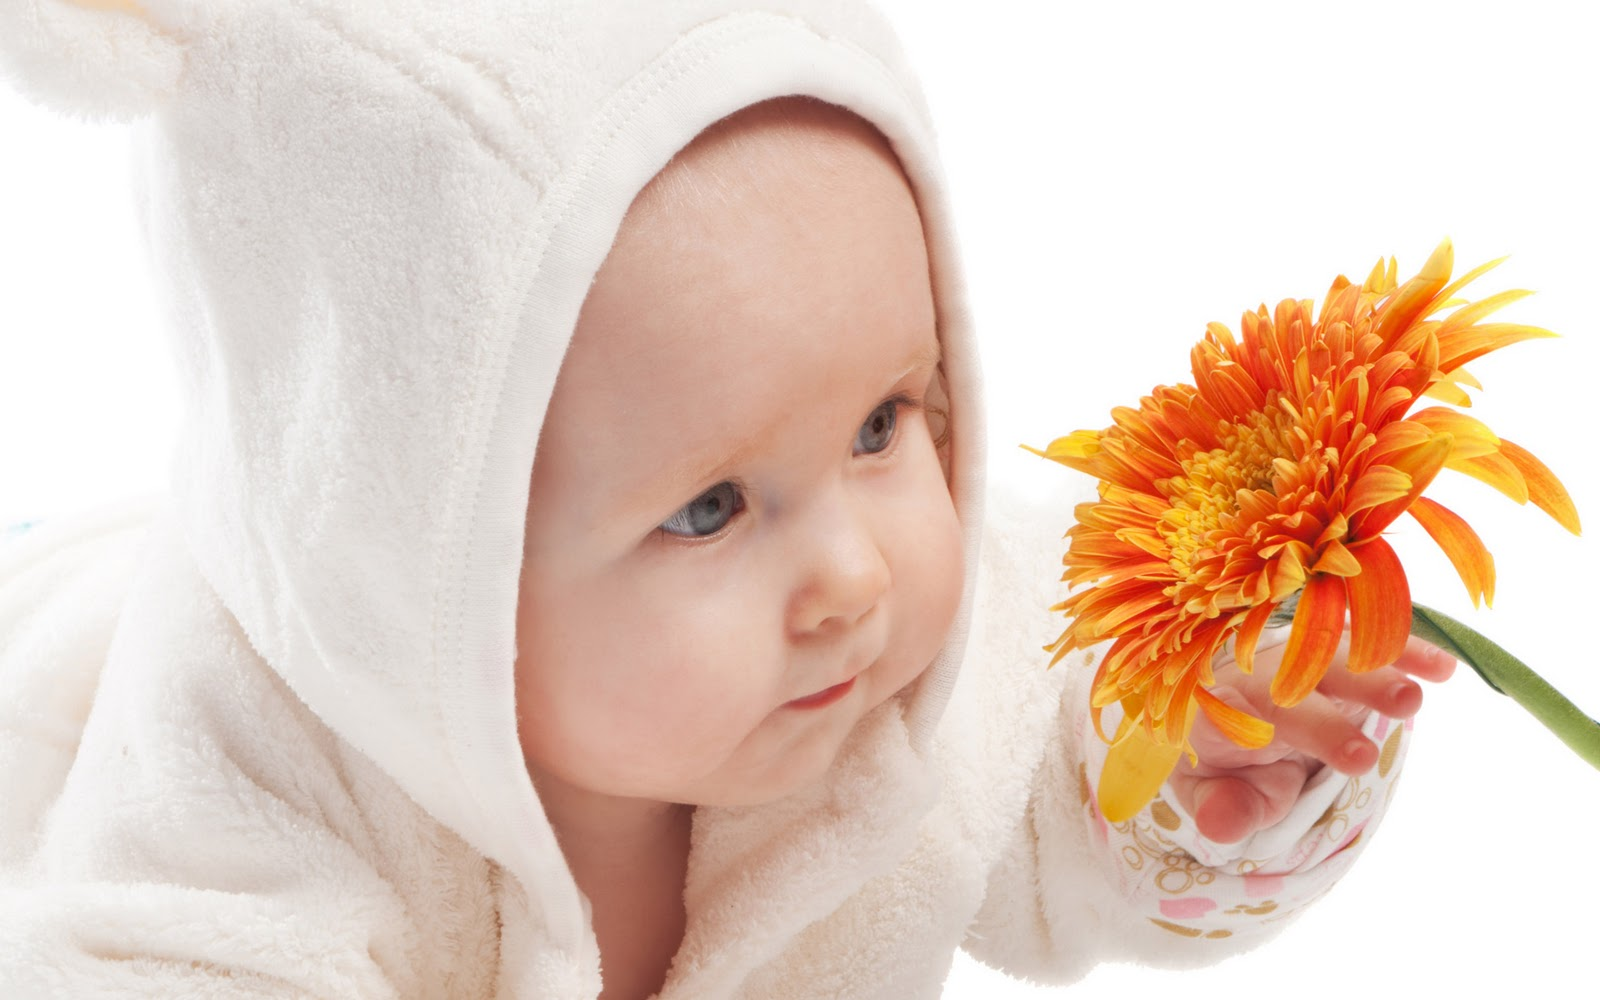 Love cute child Wallpaper : Babbies Wallpapers Free Download, cute Kids Wallpapers, Smiling crying Babies.: 2012-02-19